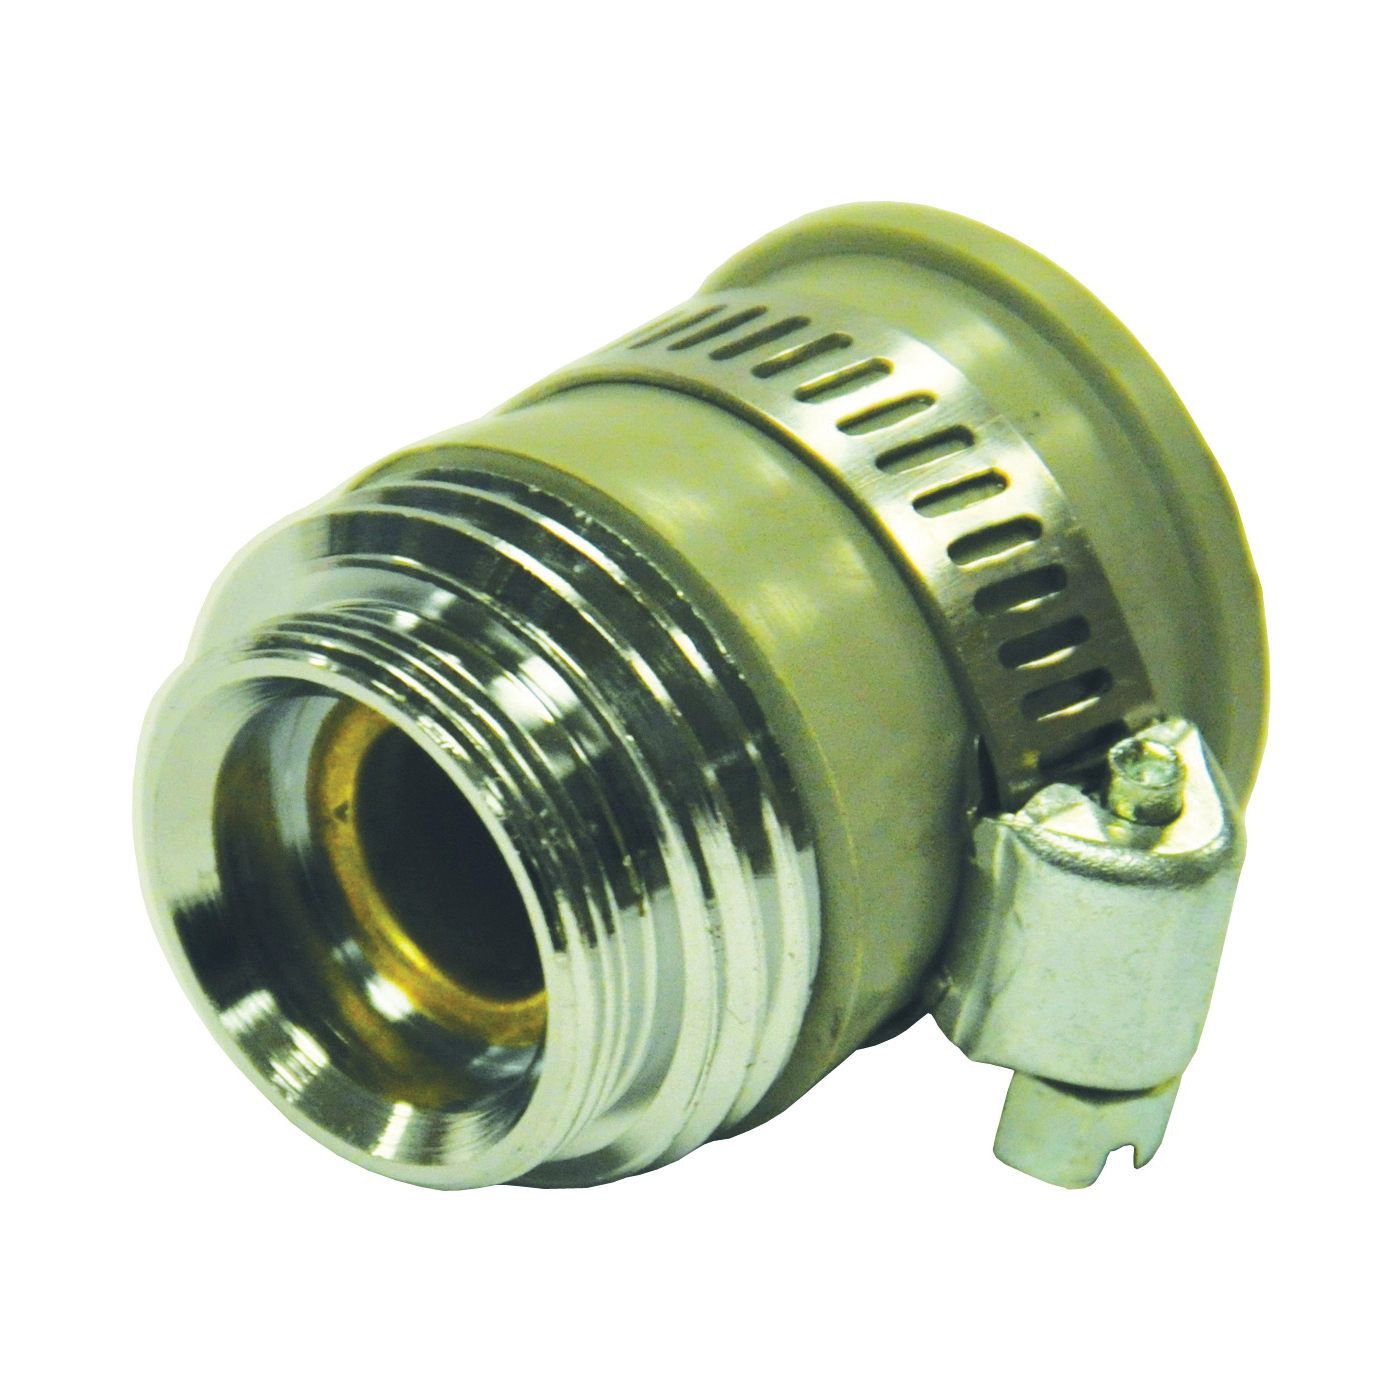 Picture of Danco 10514 Hose Aerator Adapter, 55/64-27 x 3/4 in, Male x GHTM, Brass, Chrome